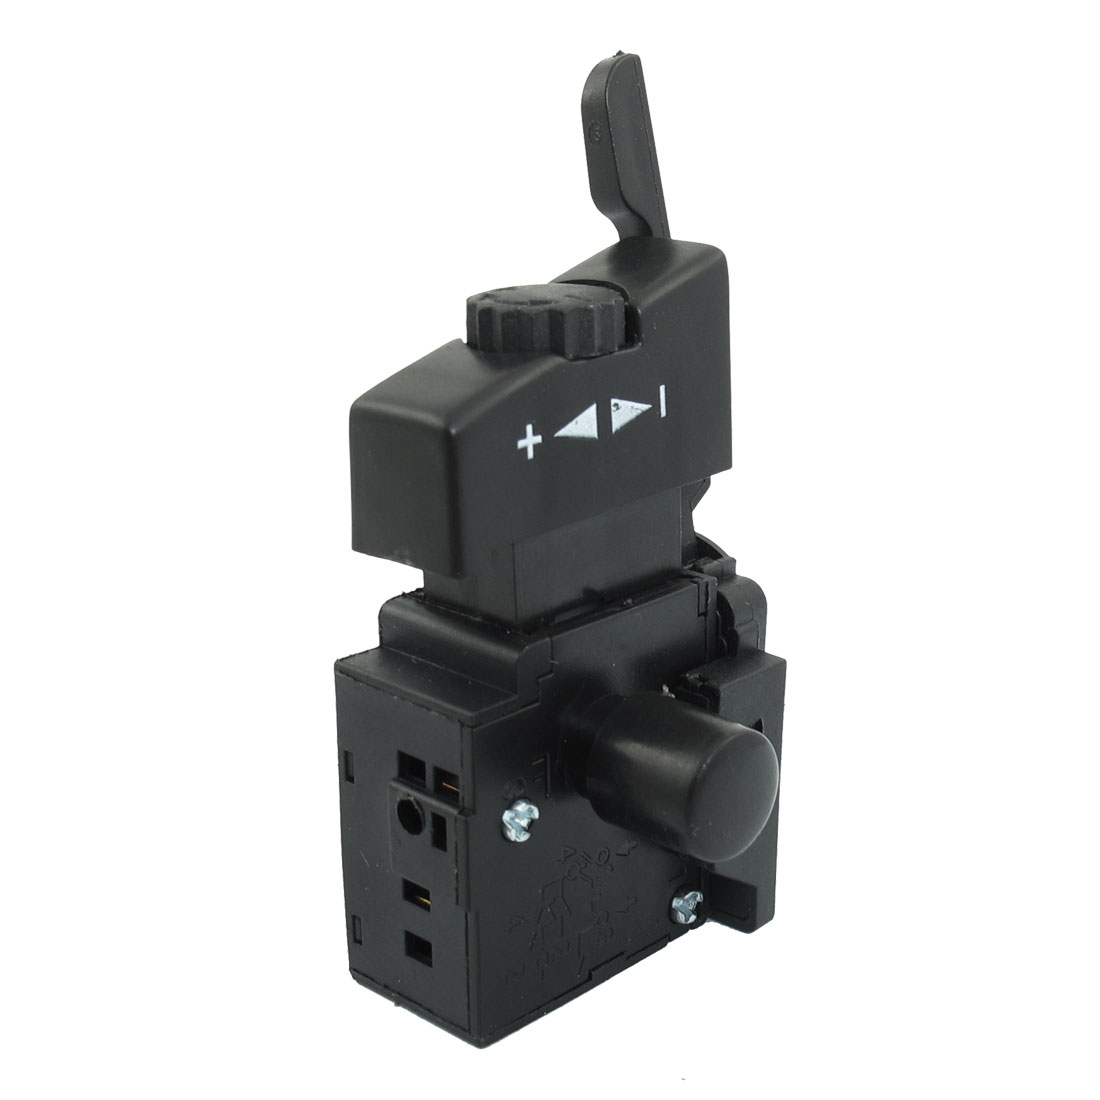 AC 250V 6A Lock On Black Hand Drill Power Speed Control Trigger Switch